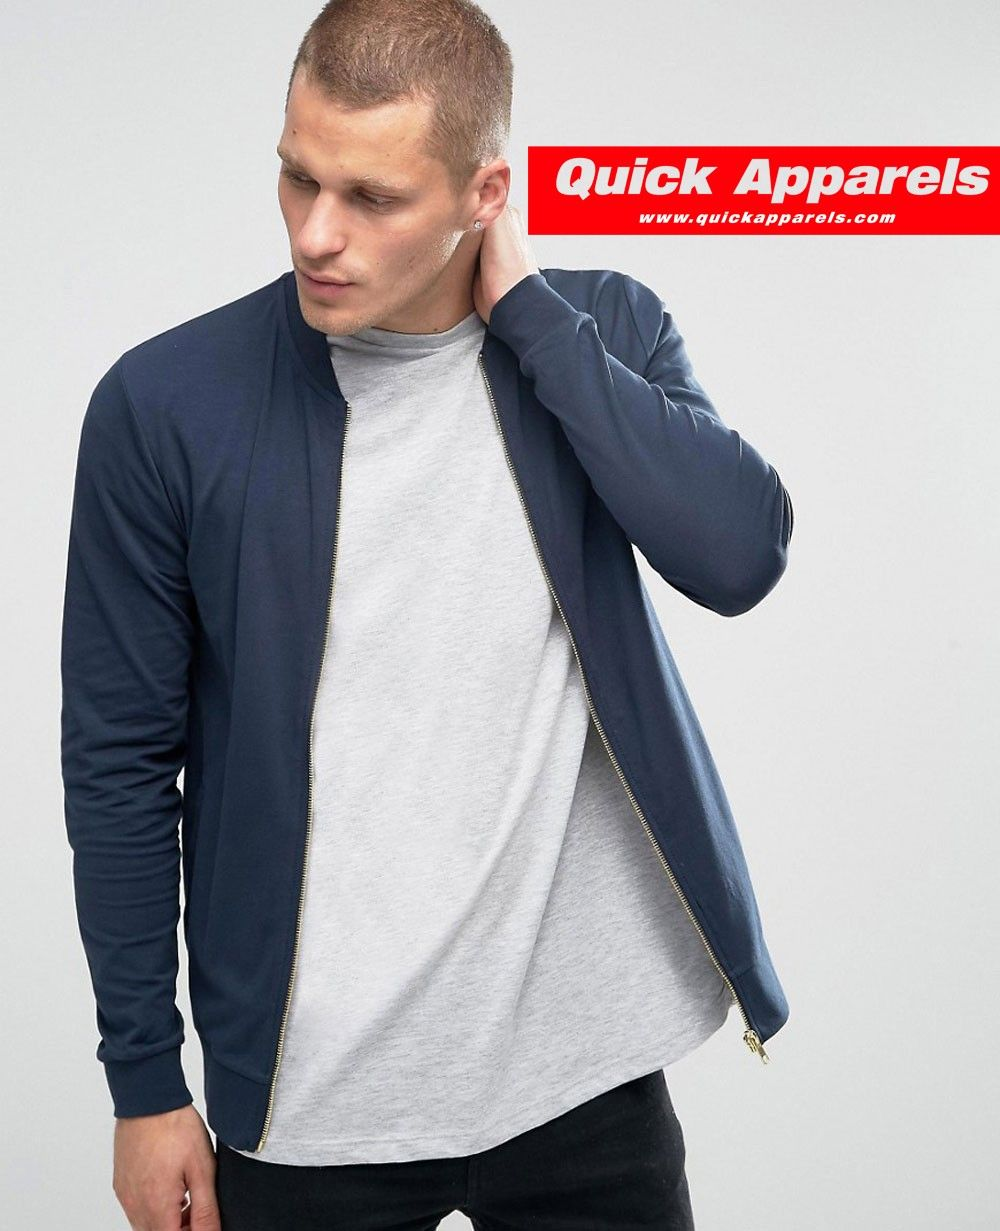 http://www.quickapparels.com/fit-jersey-bomber-jacket-in-navy.html